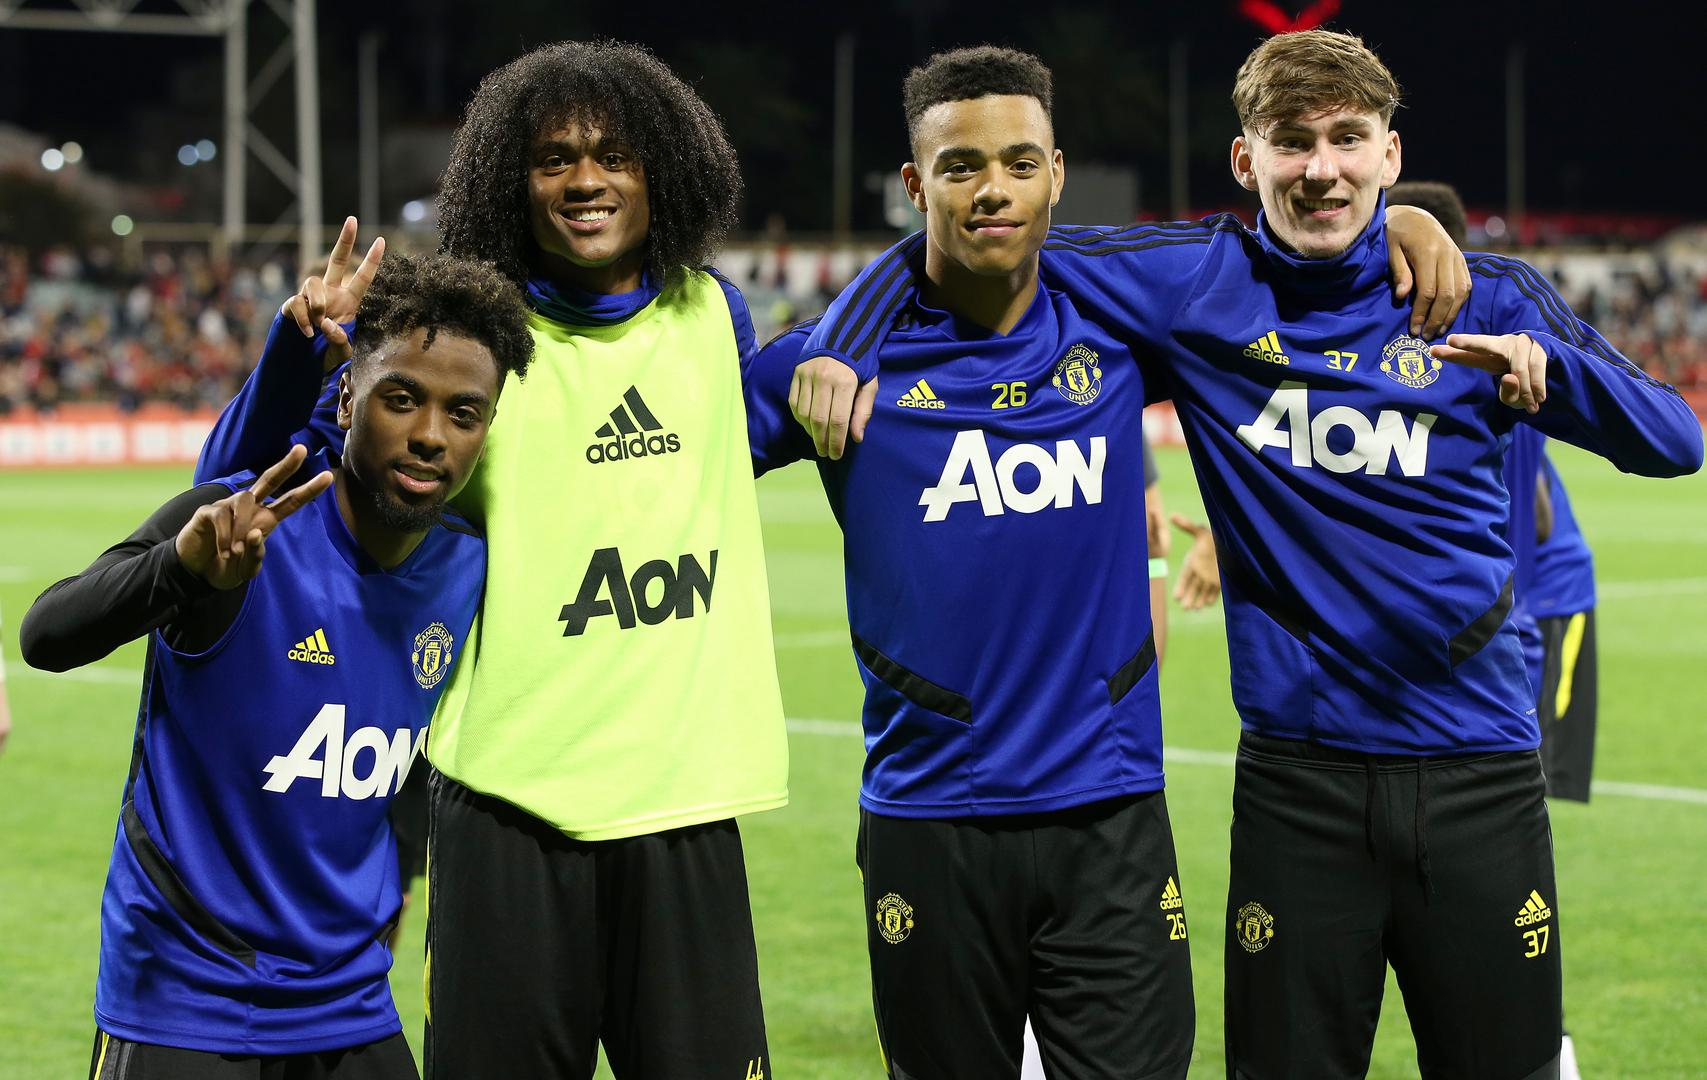 Angel Gomes, Tahith Chong, Mason Greenwood and James Garner pose for a photo on Tour 2019.